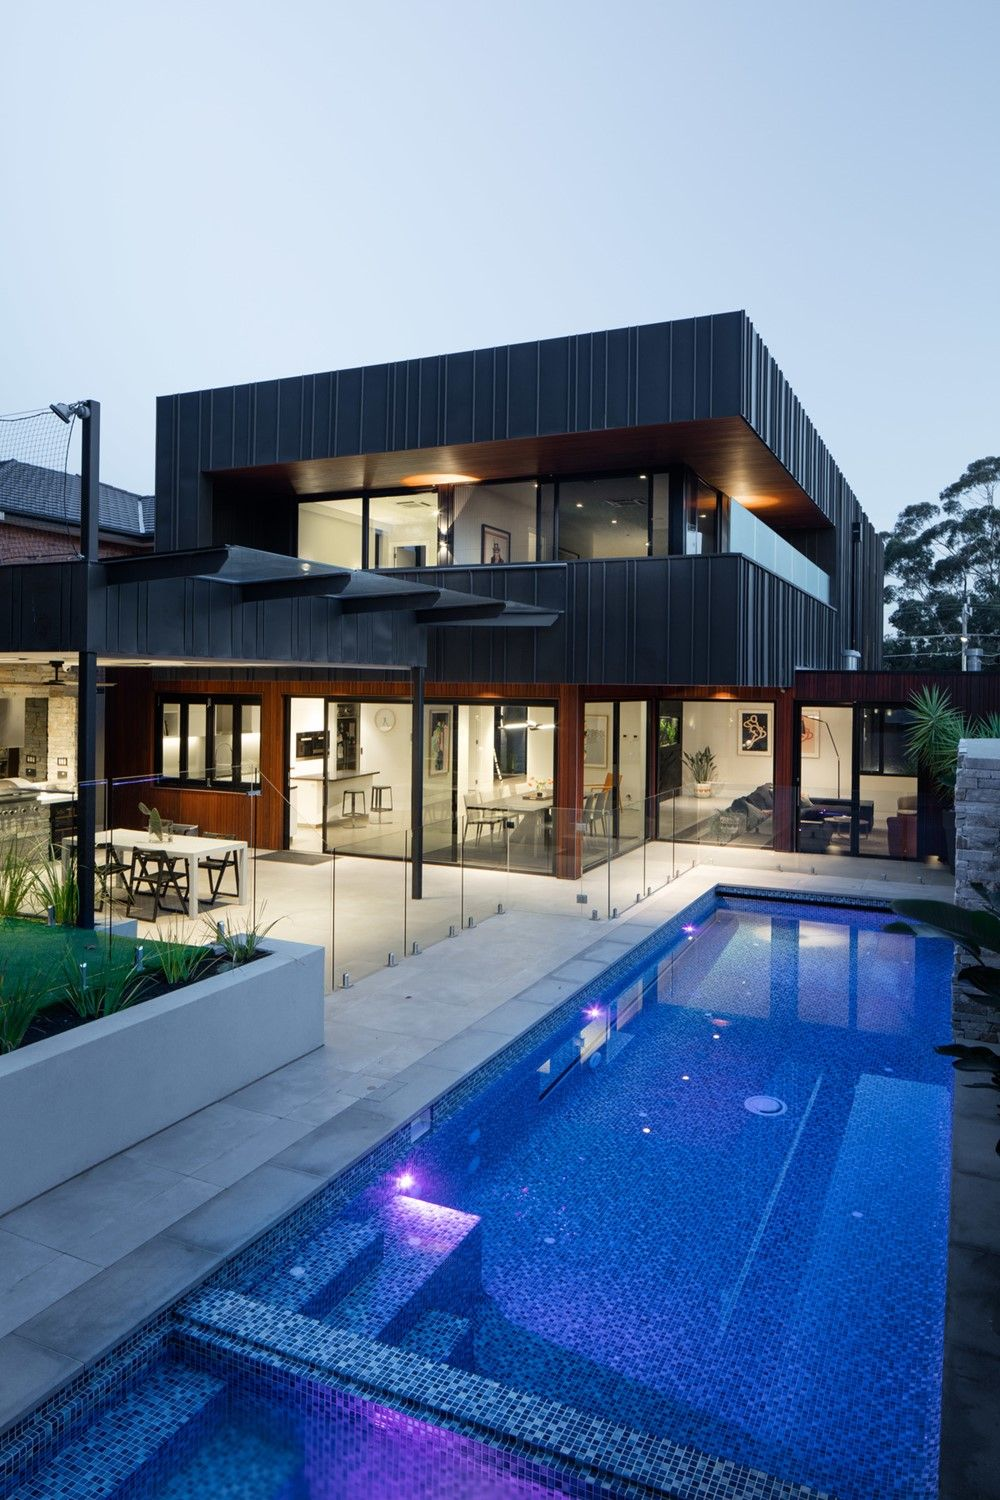 Plumbers house by finnis architects house pinterest